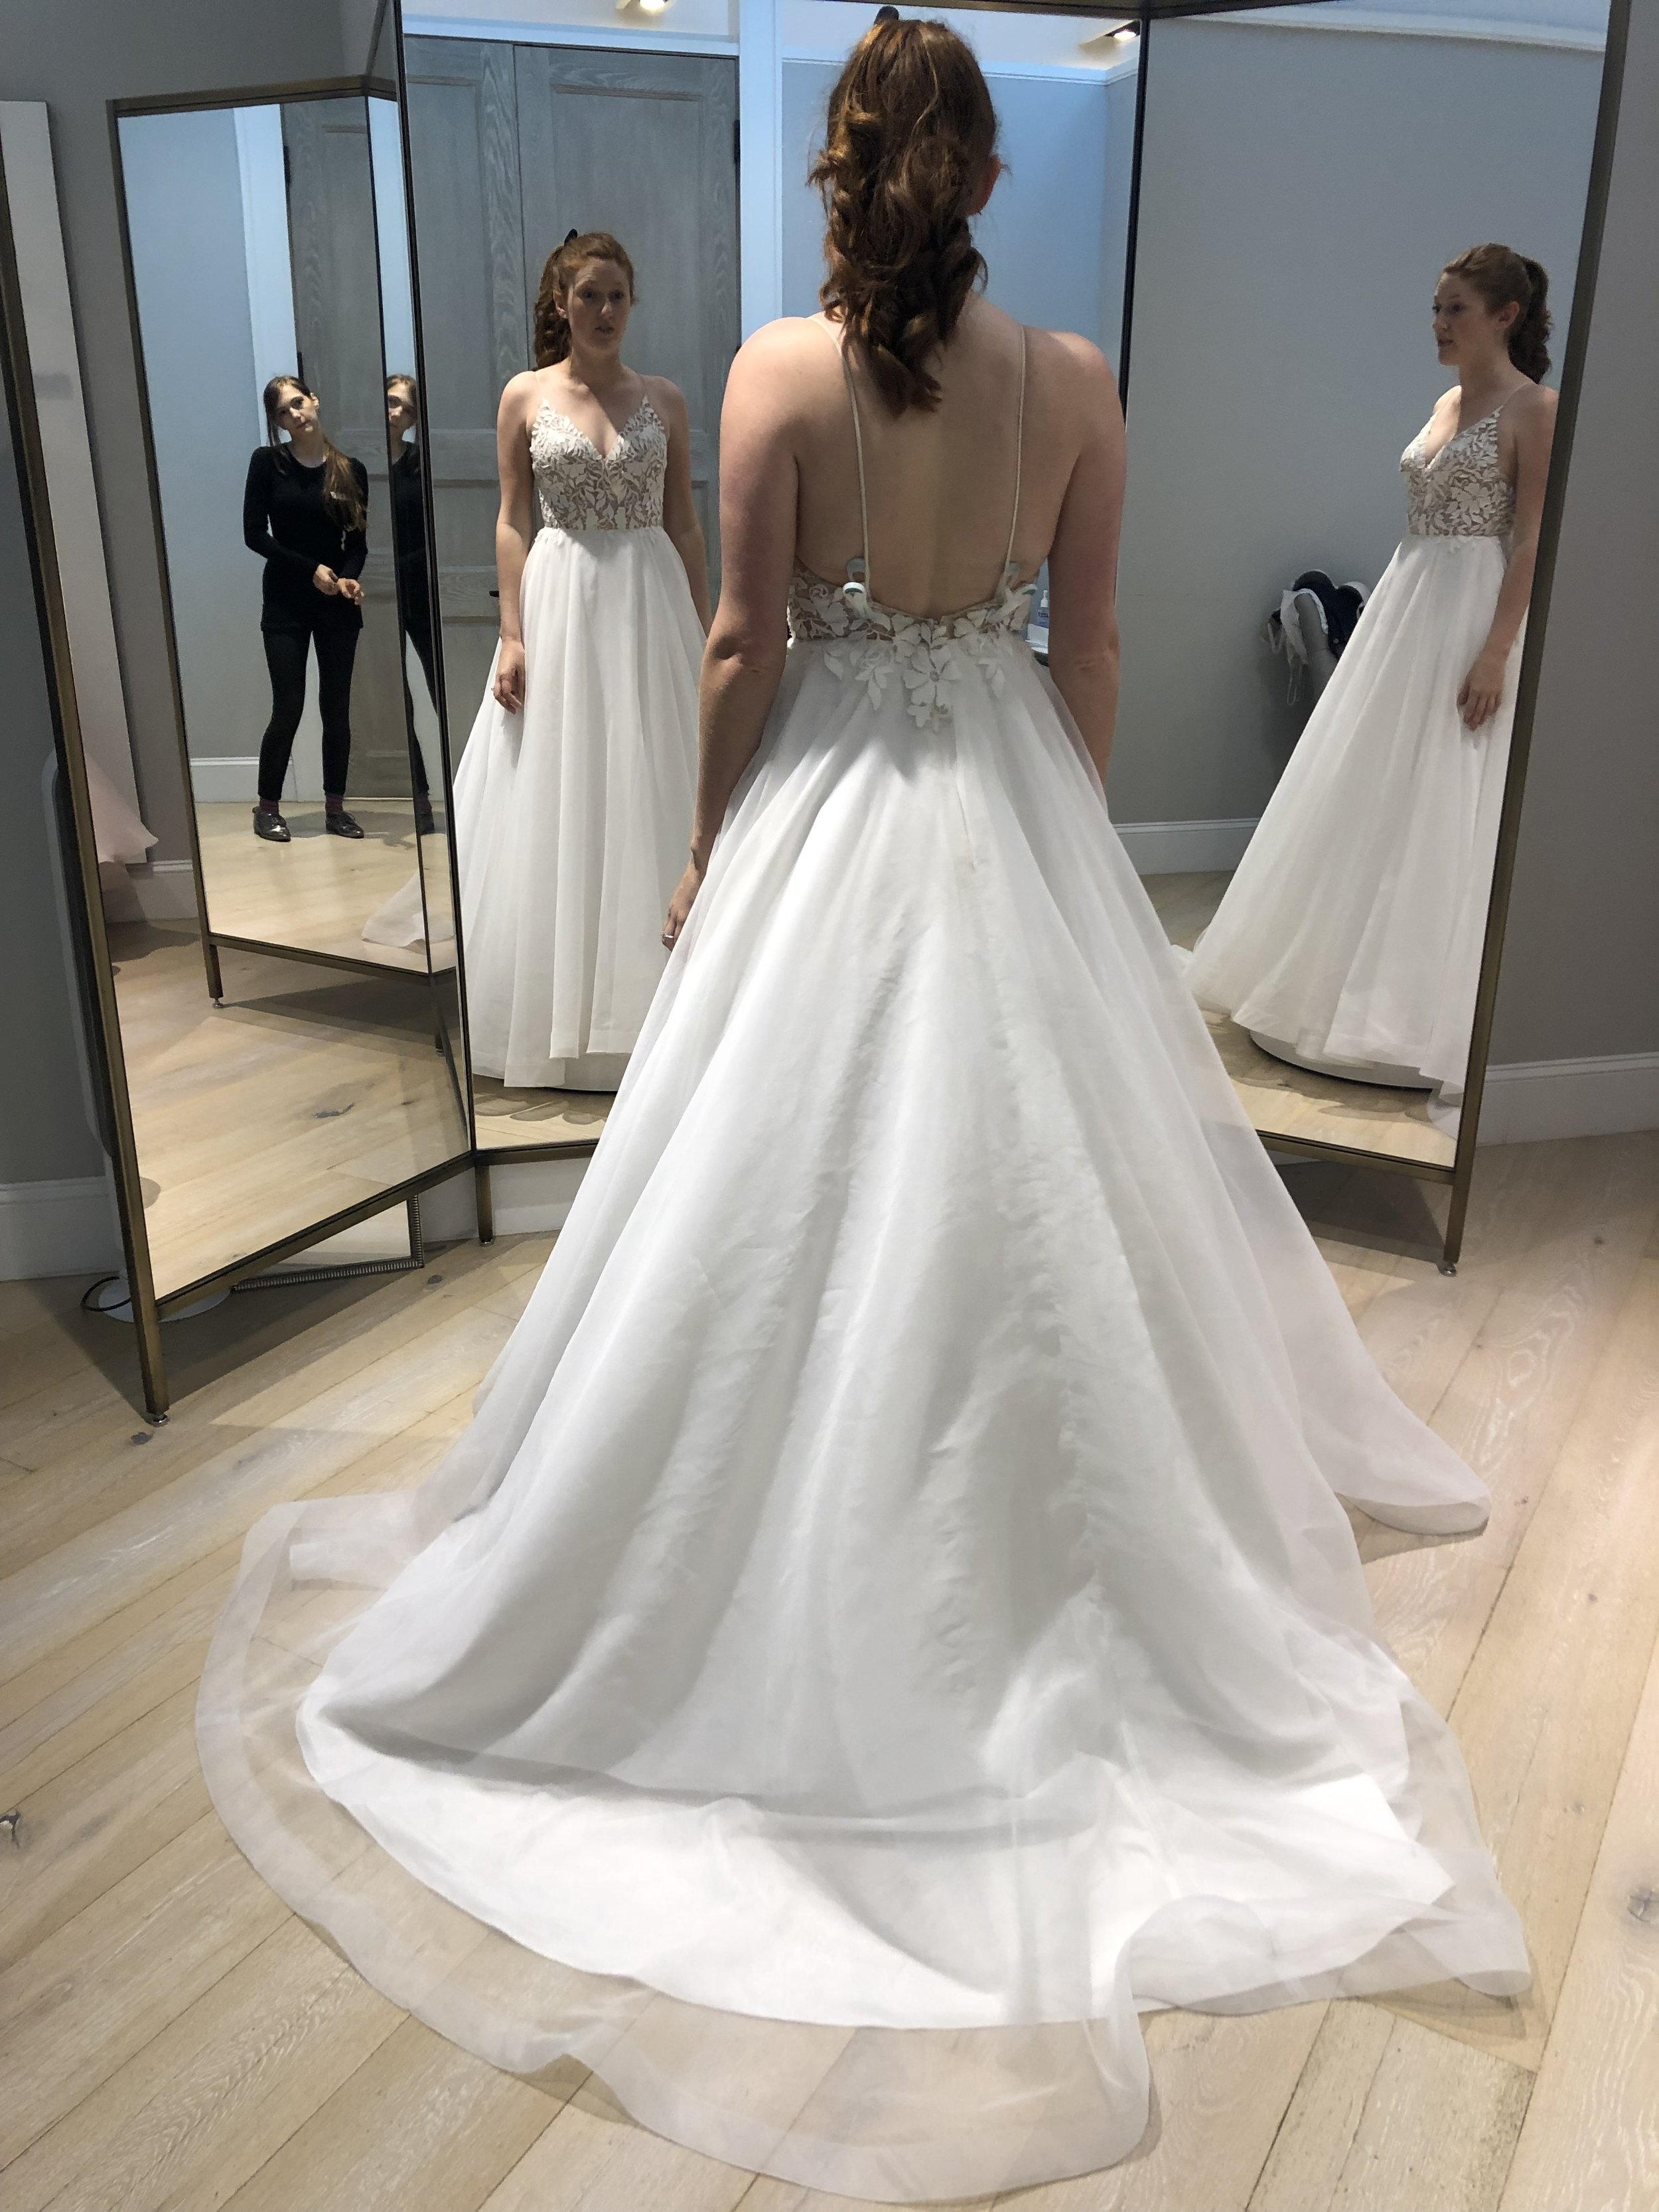 trying on wedding dresses.jpg